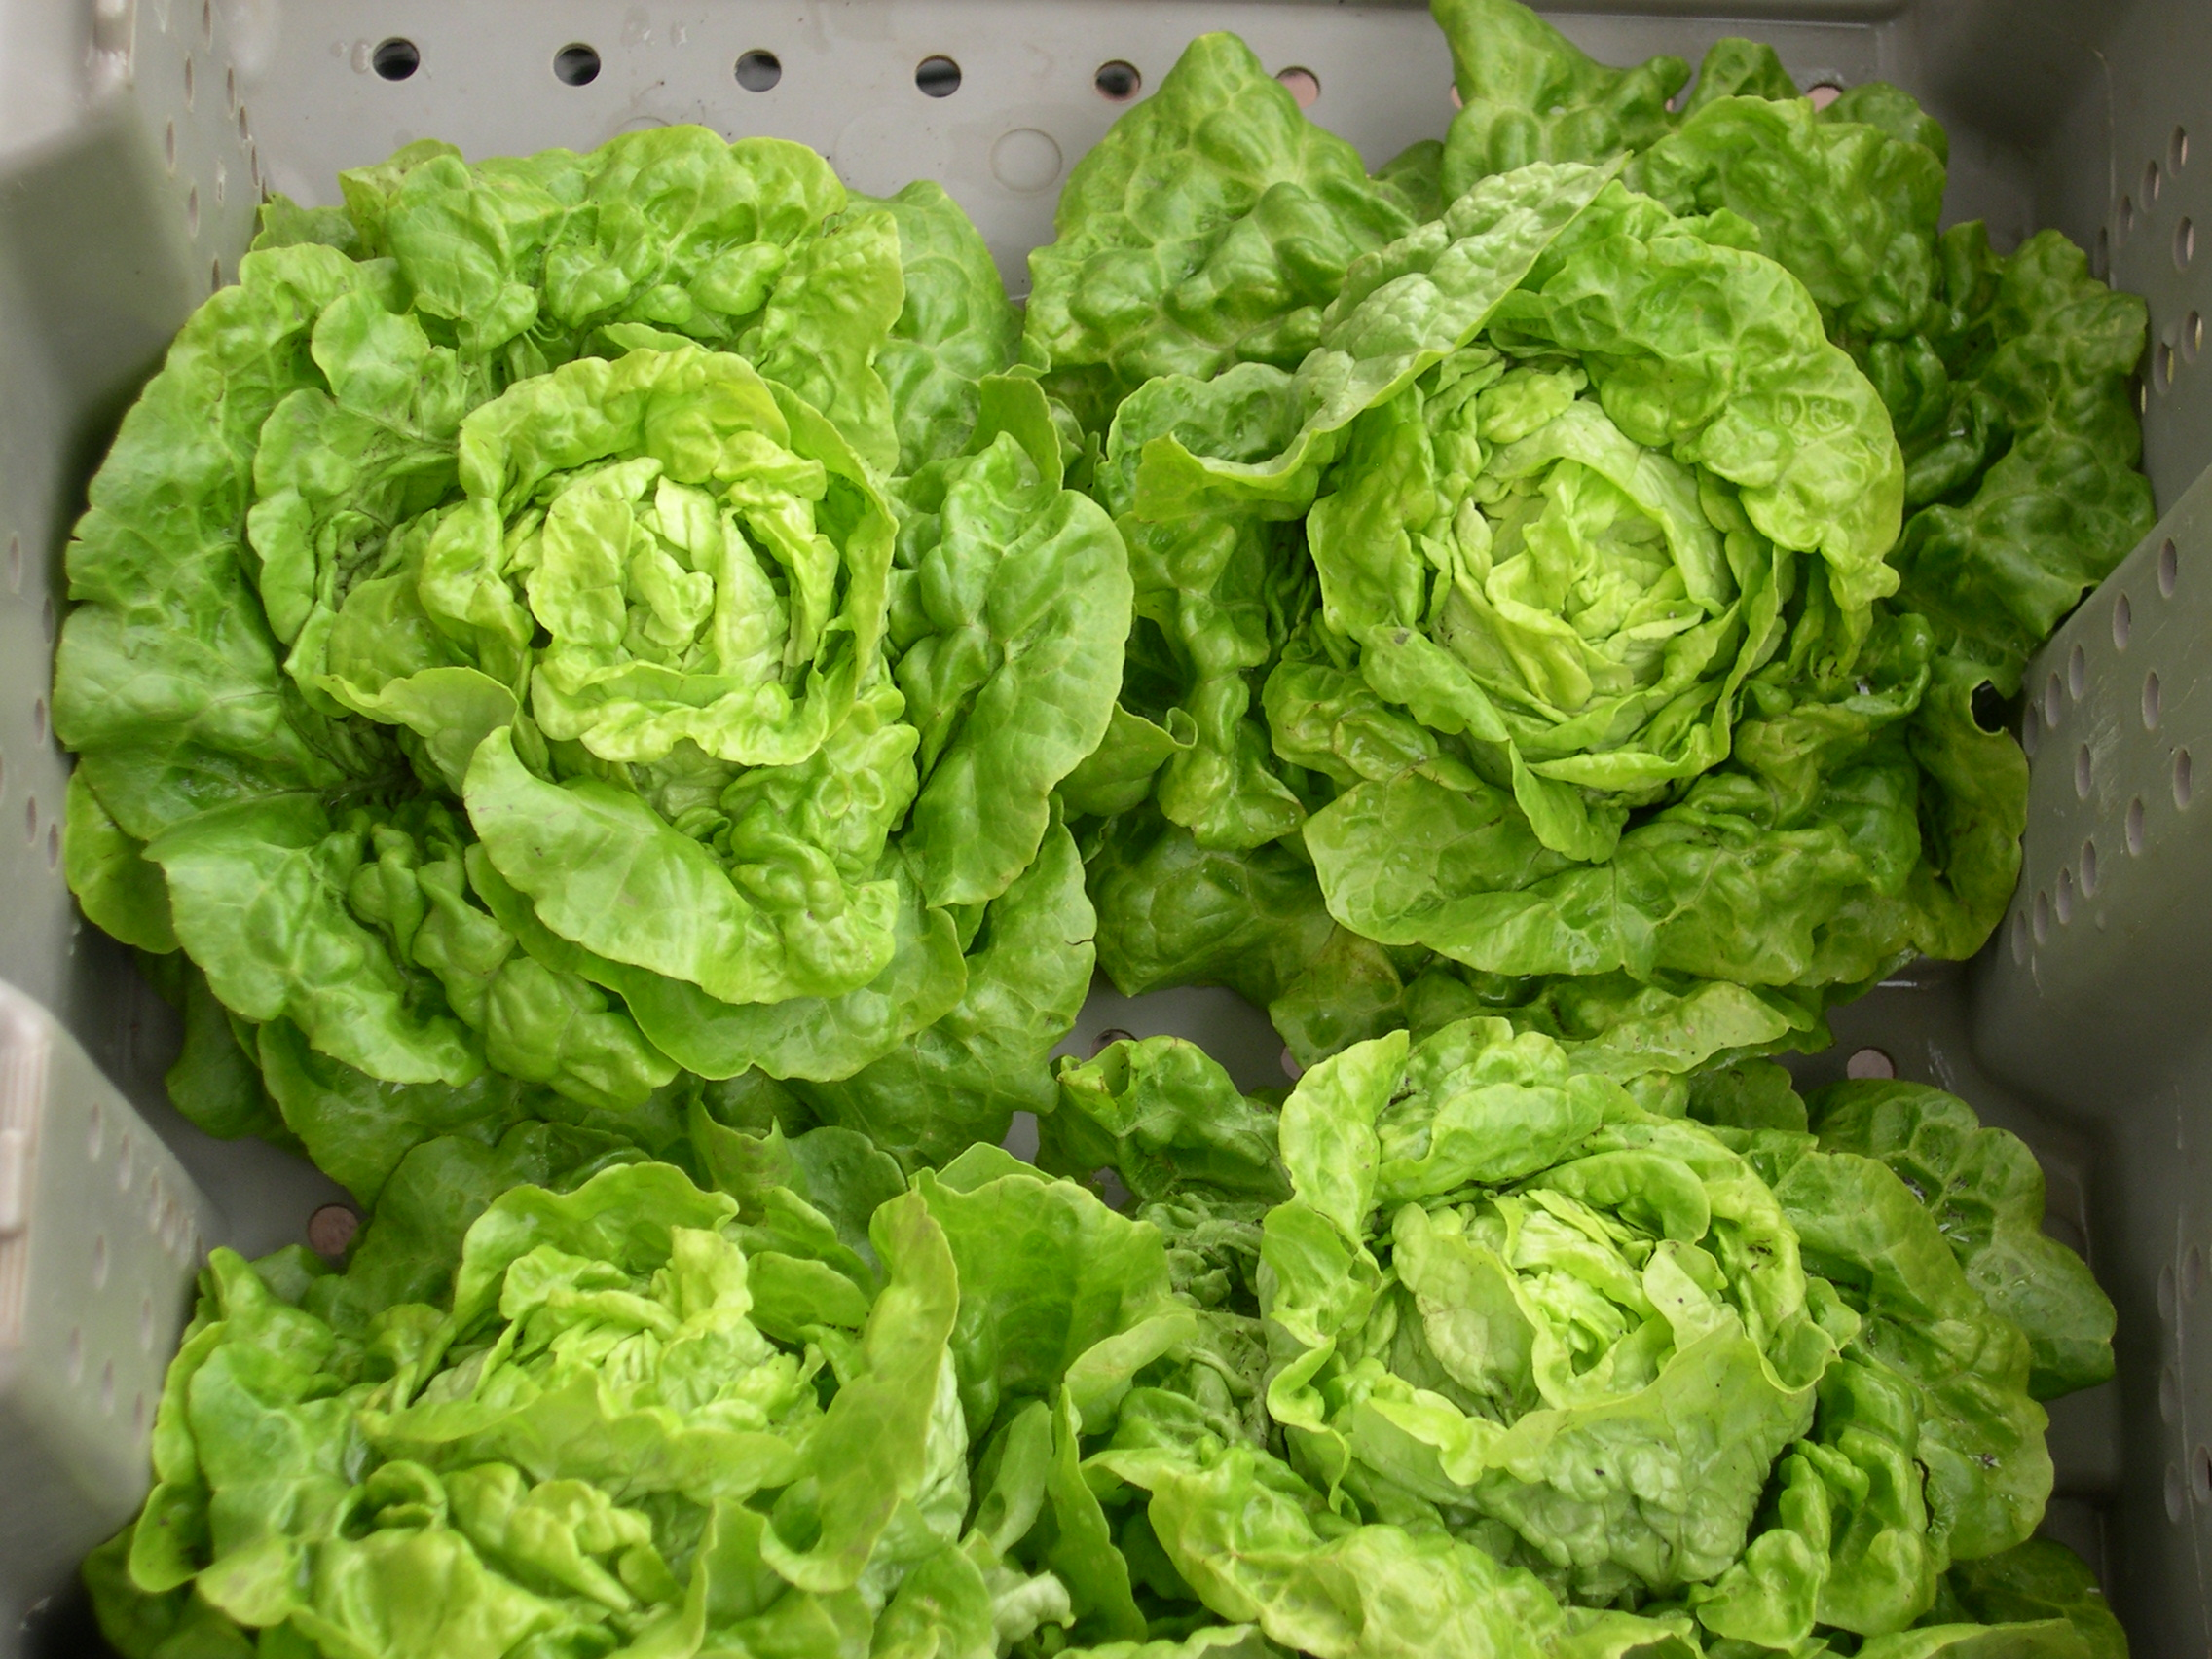 lettuce at market